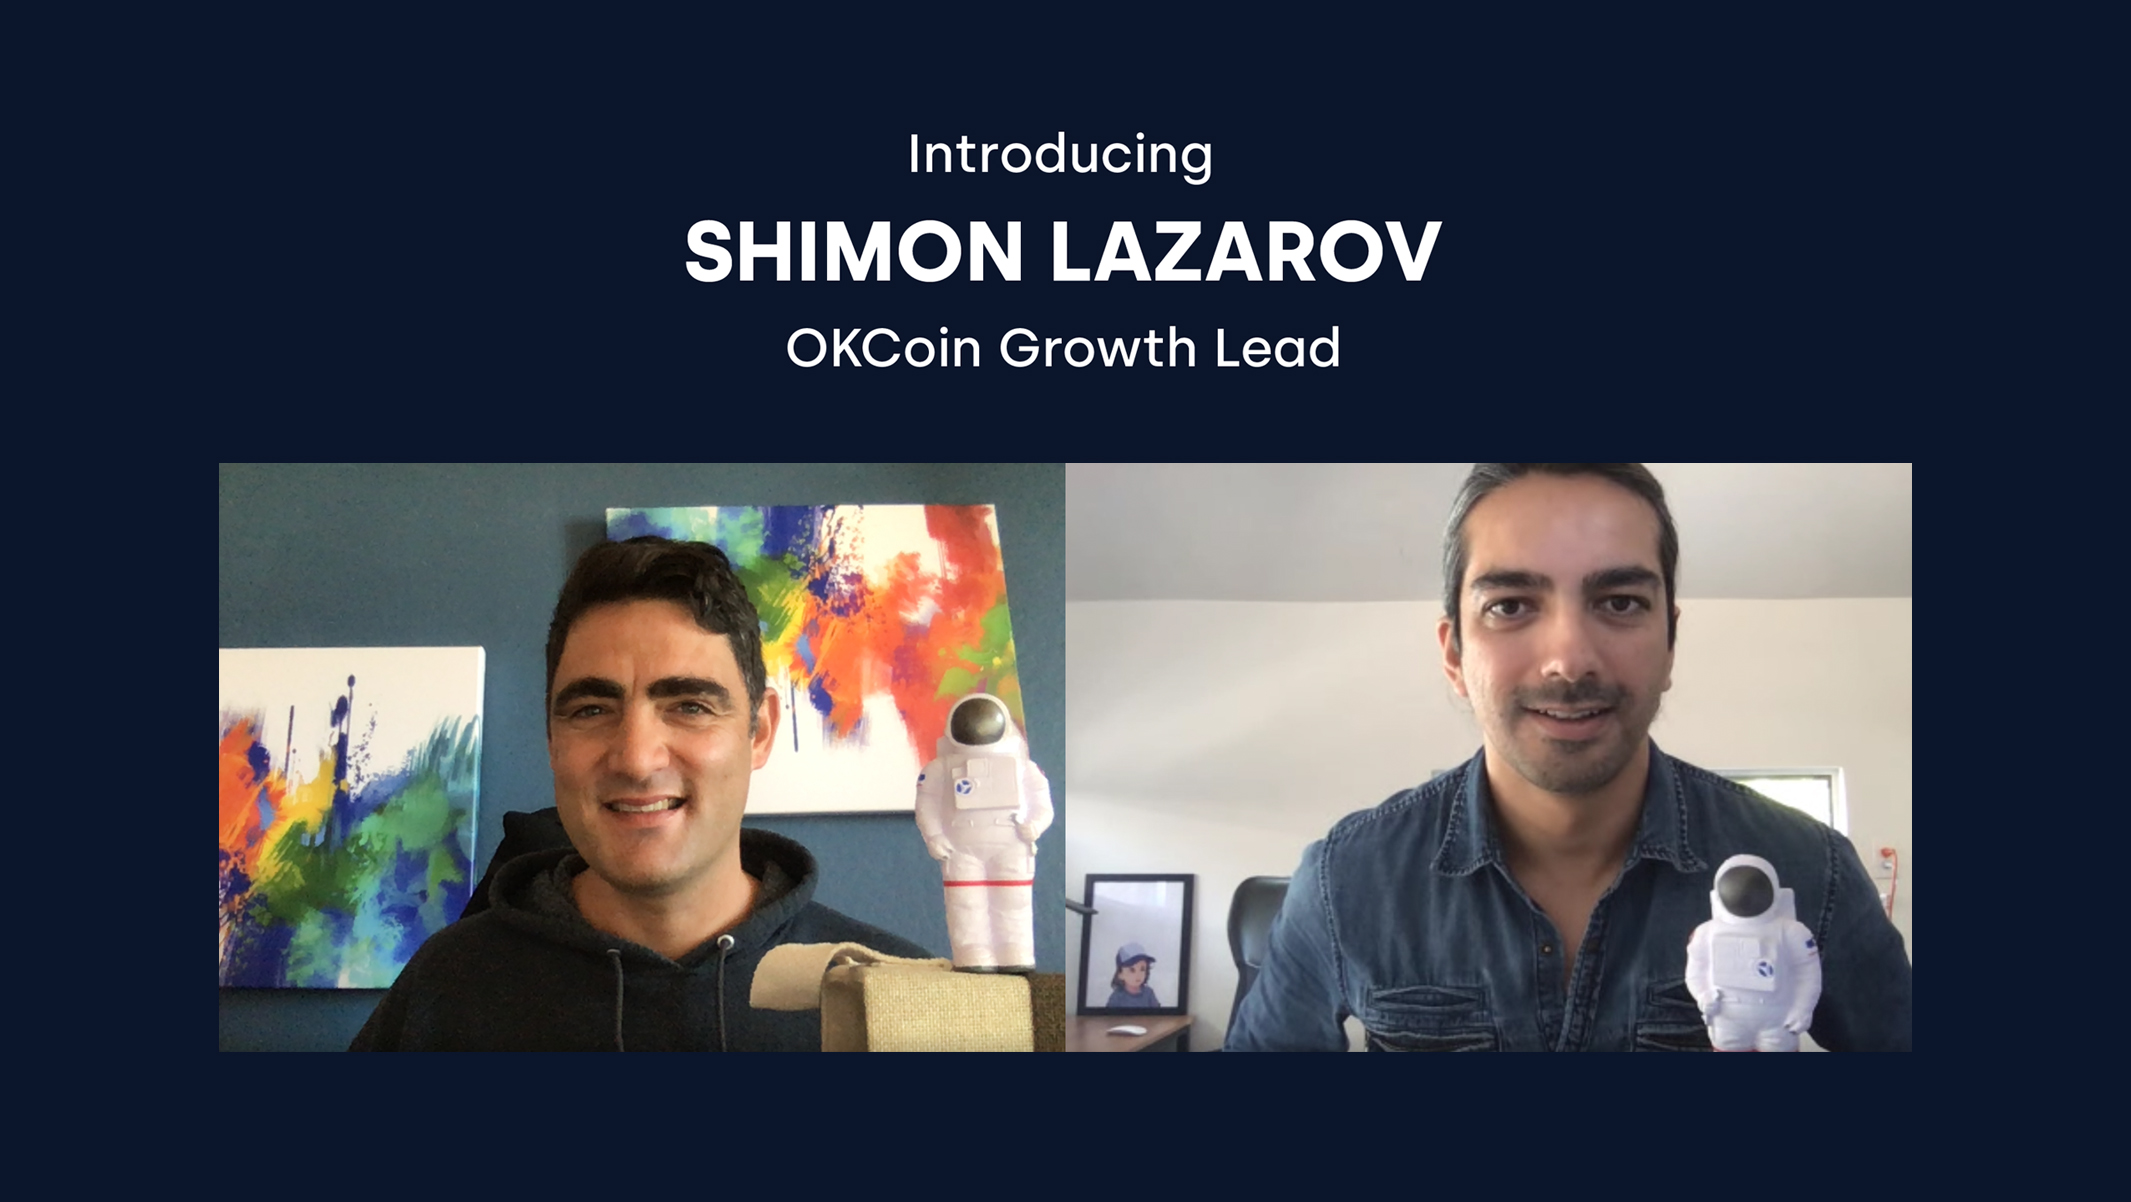 Shimon Lazarov joins OKCoin cryptocurrency exchange as Growth Lead